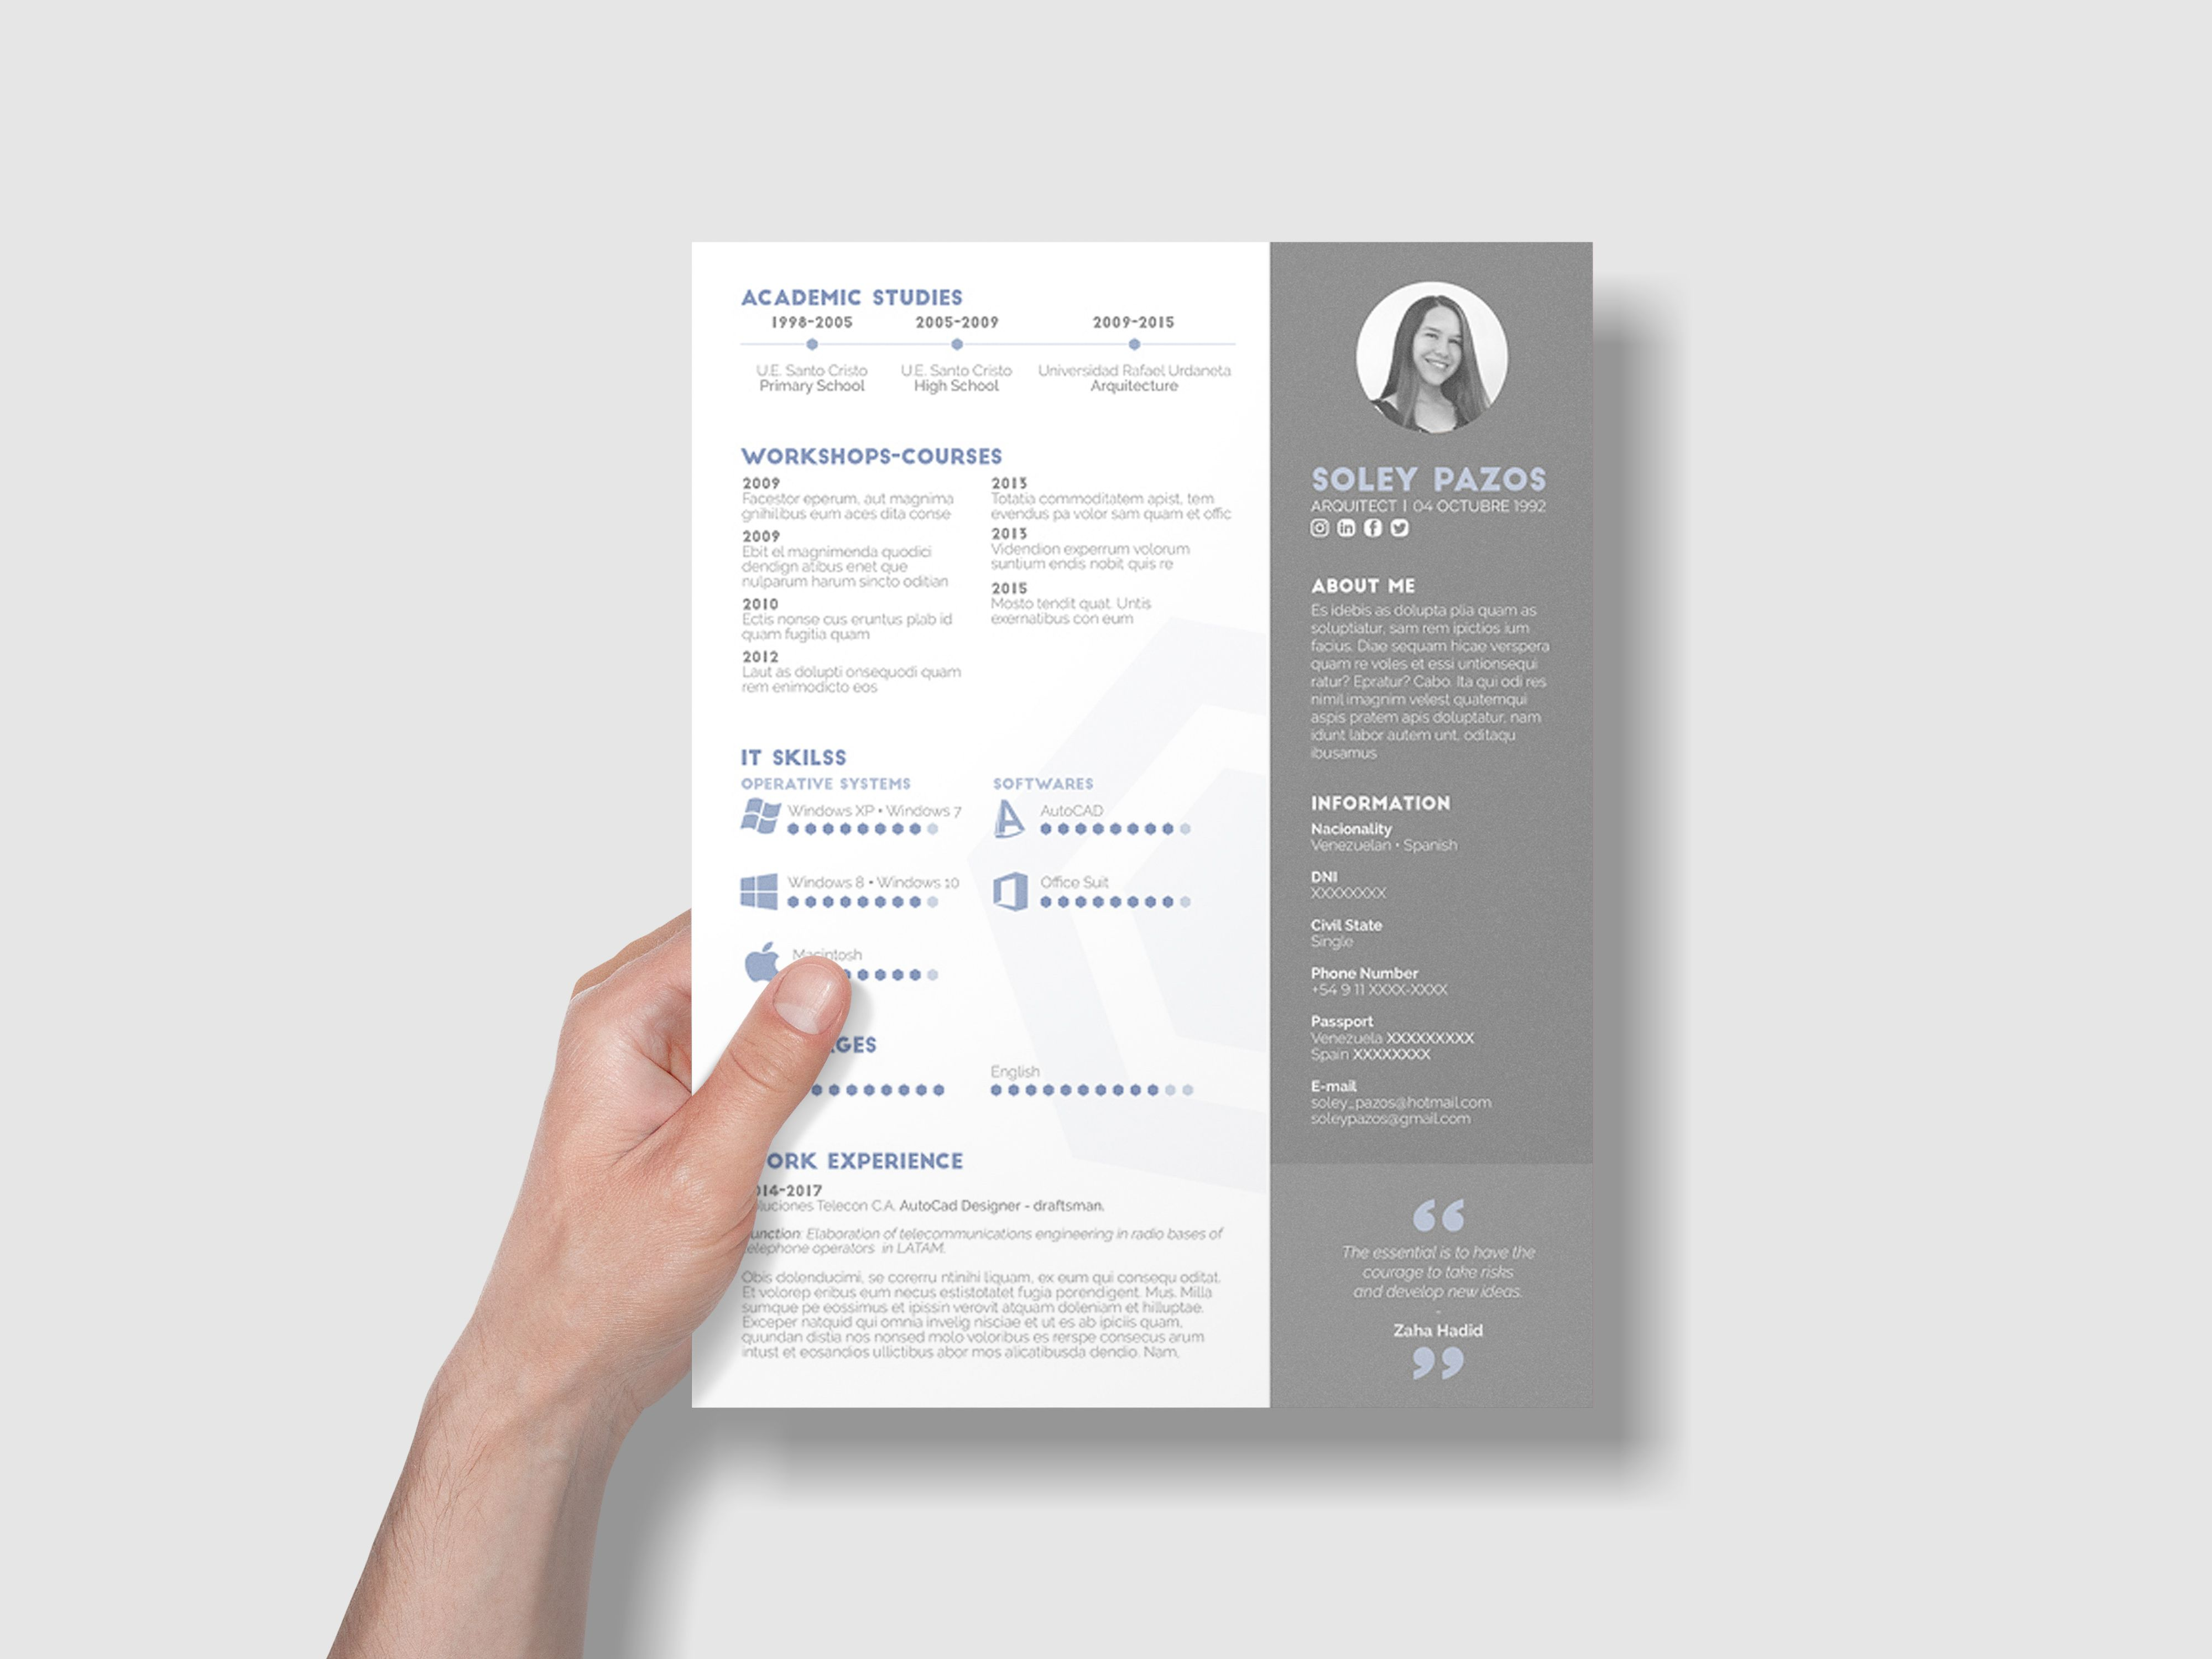 Free Architecture Resume Template - Architecture resume, Resume design template, Resume design free, Resume design, Resume template, Resume - Here is free architecture resume template with clean and modern design  Free curriculum vitae template, perfect to introduce yourself into the business world, easy to modify, simple grid, professio